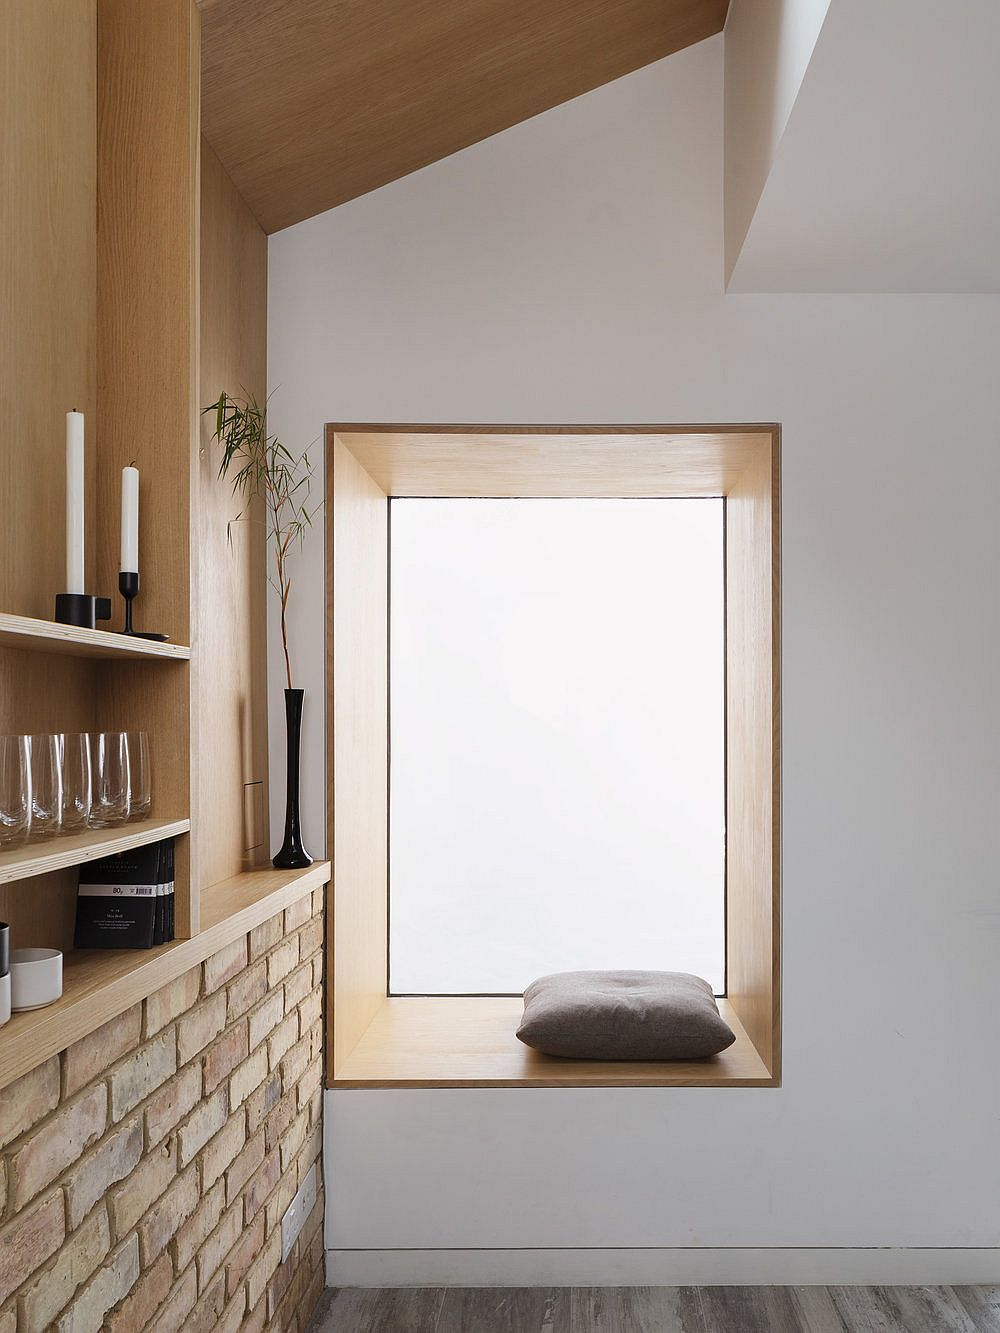 Lovely wooden window seat offers a fabulous relaxation zne within the house